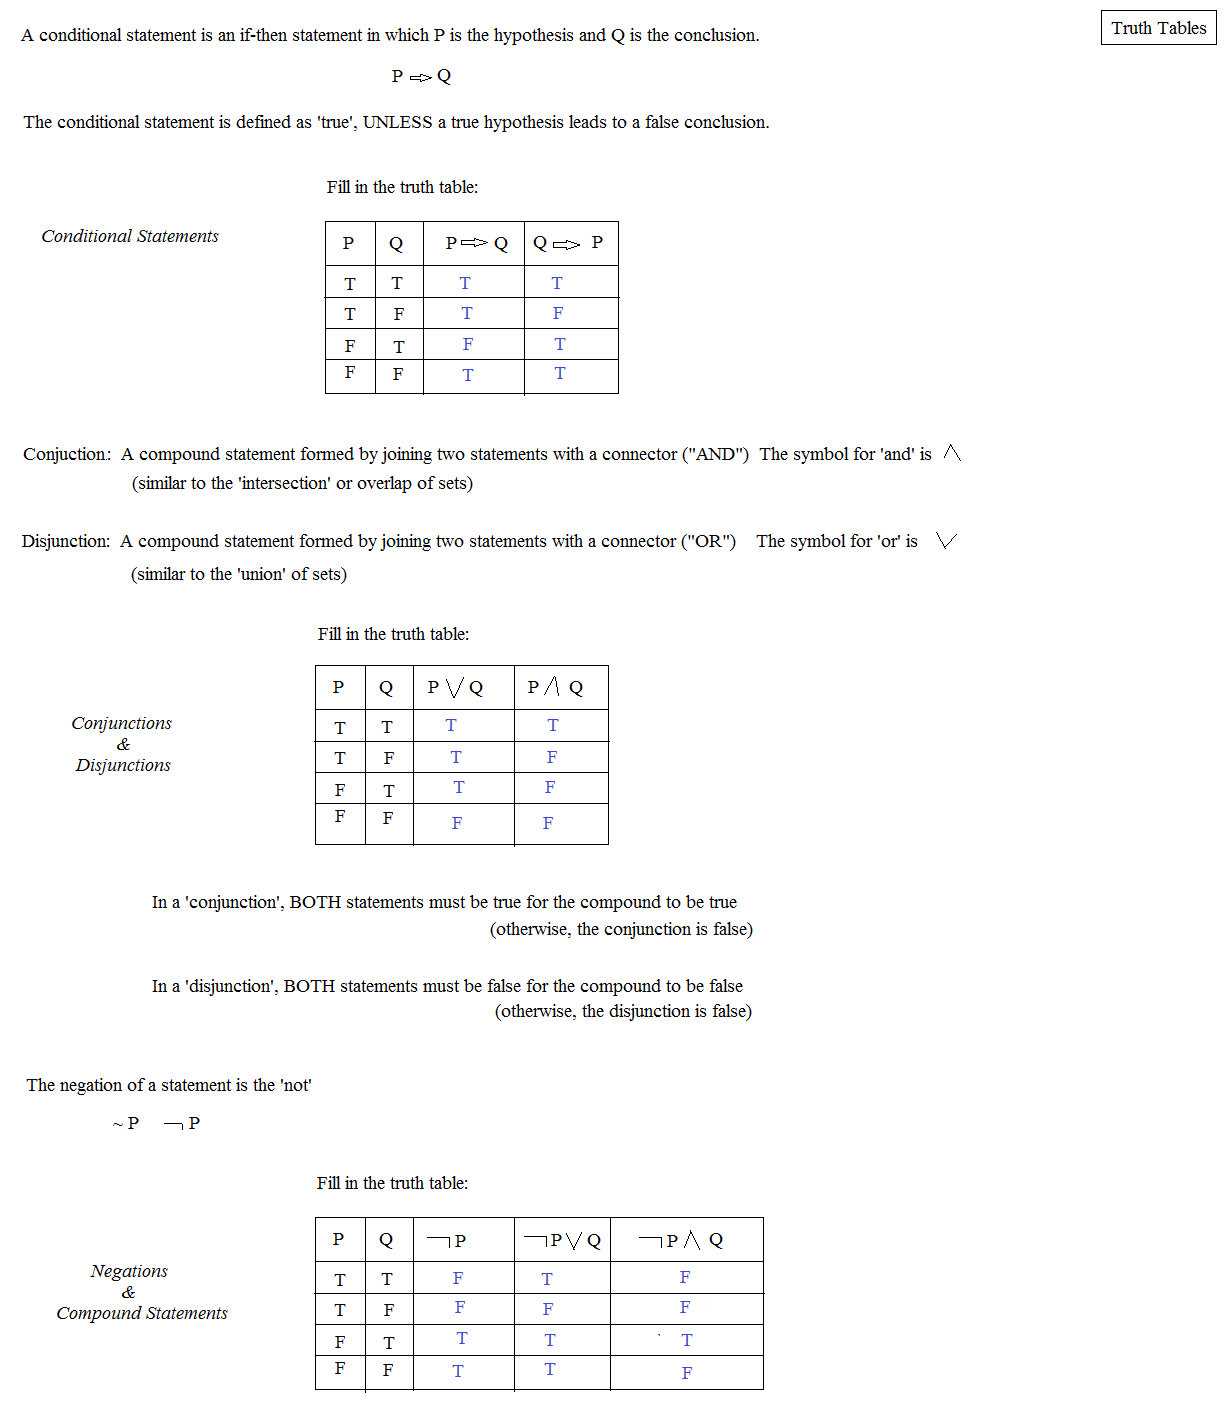 Math Plane Logic and Reasoning – Truth Tables Worksheet